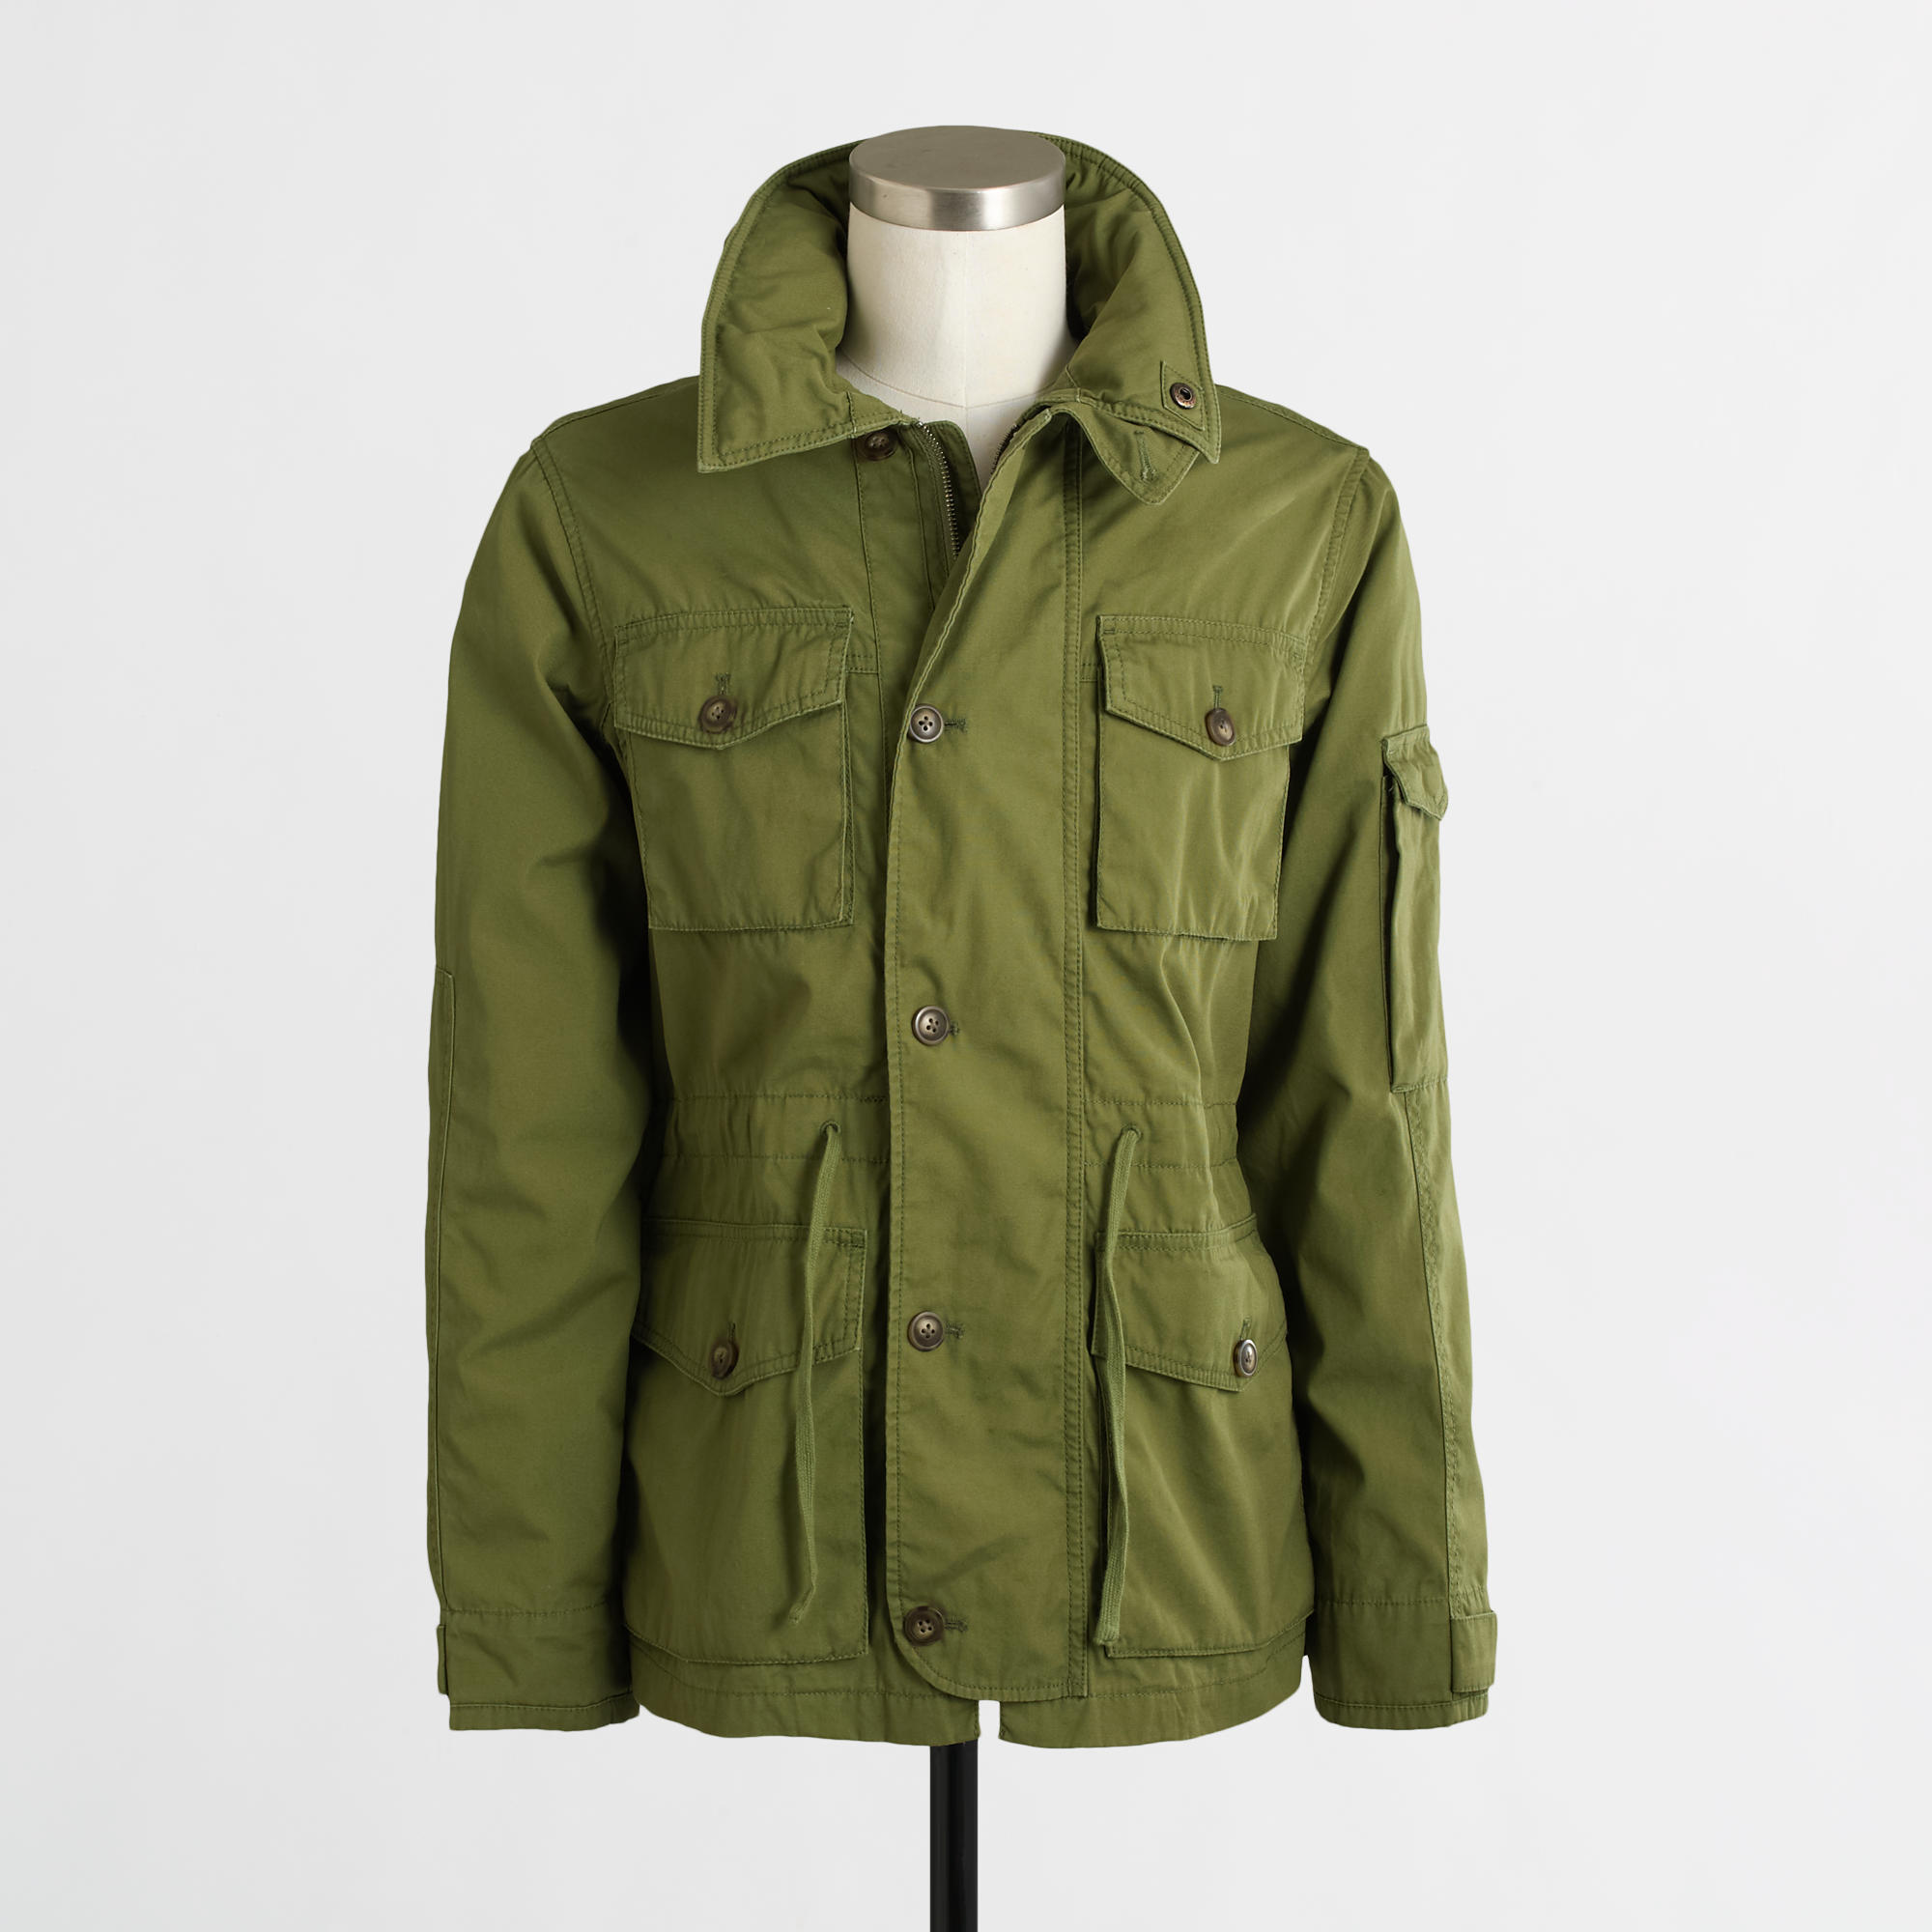 green-jacket-jcrew